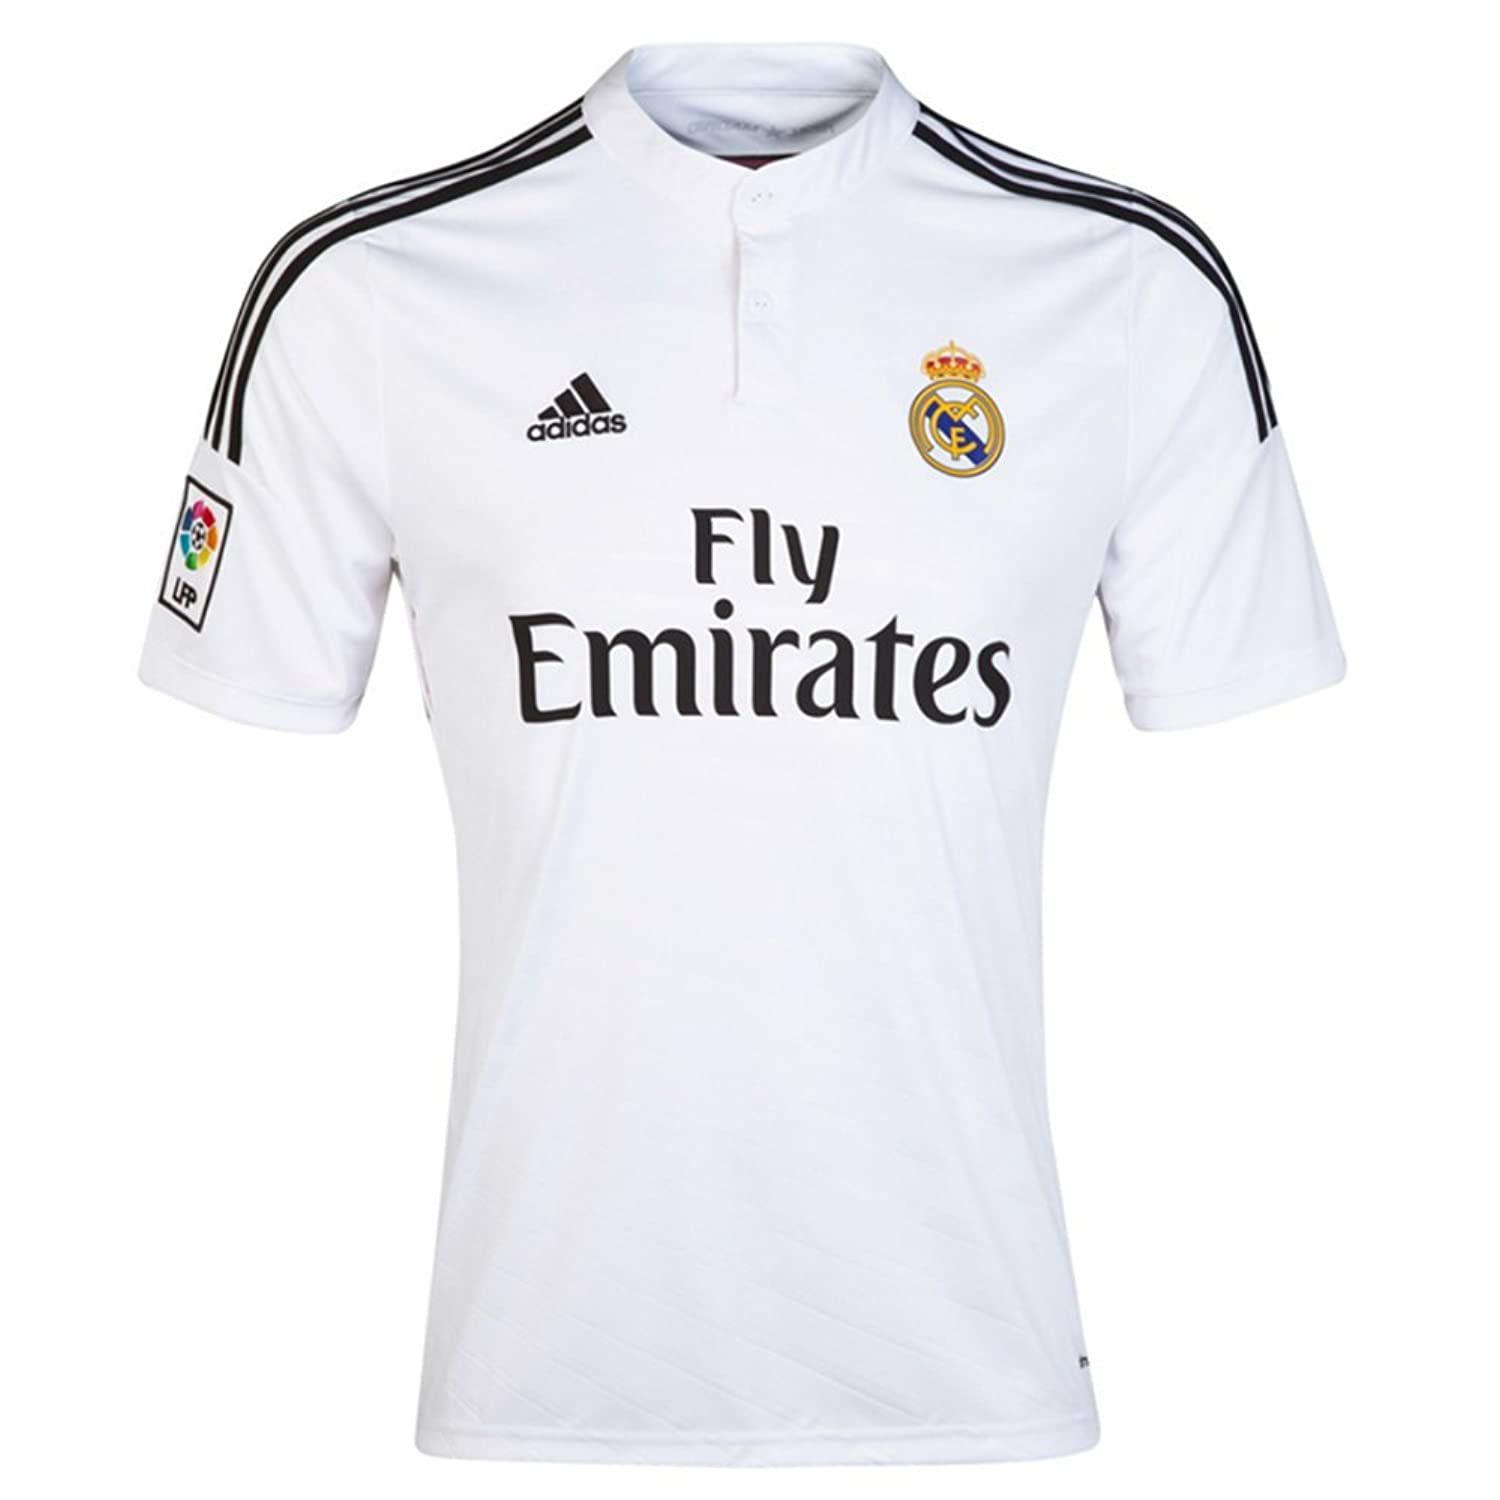 ... Long Sleeve UCL Home Soccer Jersey Amazon.com Adidas ISCO 23 Real  Madrid Home Jersey 201415 (XS) Clothing ... 186365576